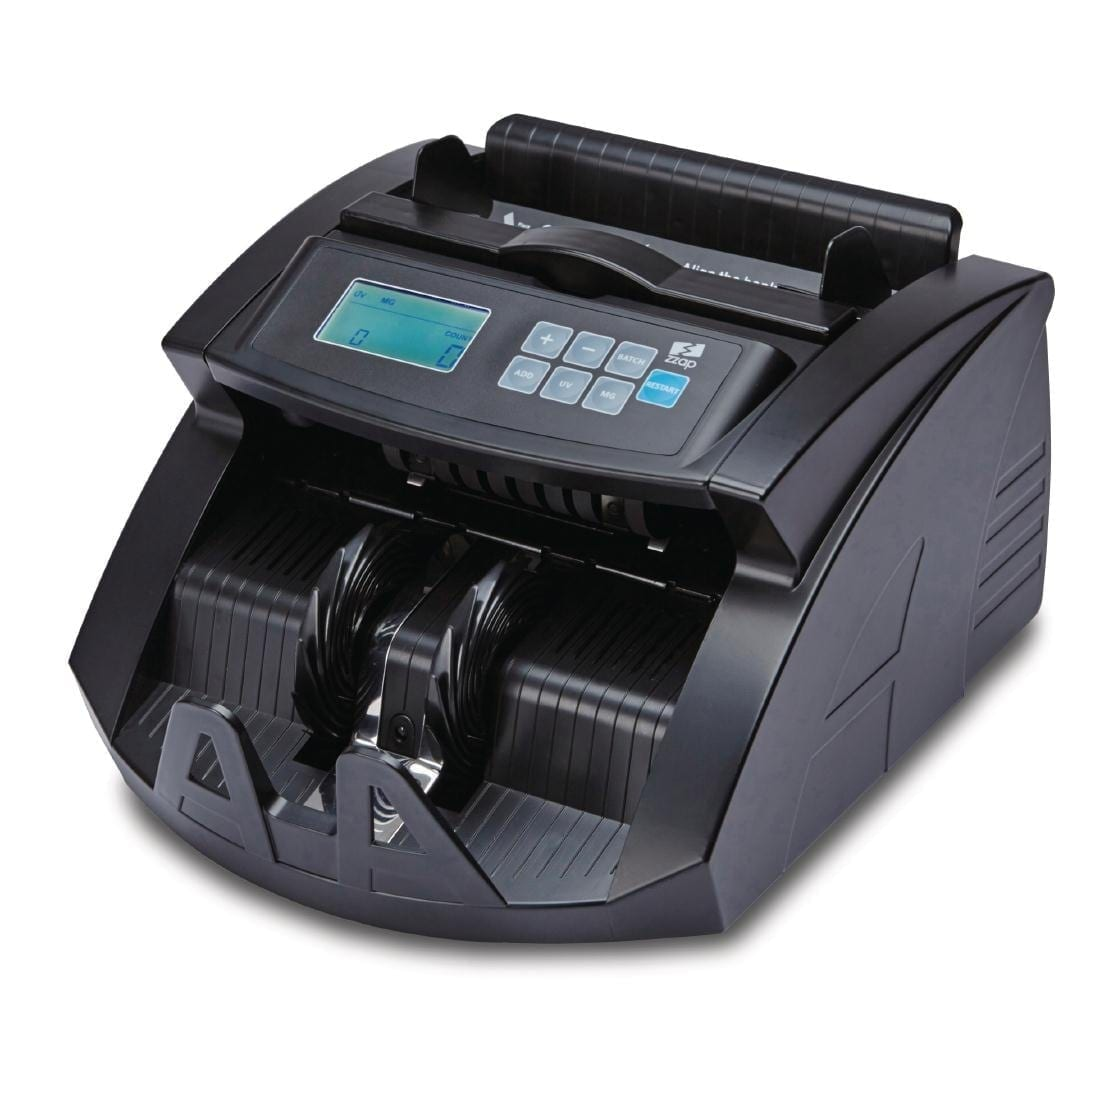 Zzap Banknote Counter 1000notes/min